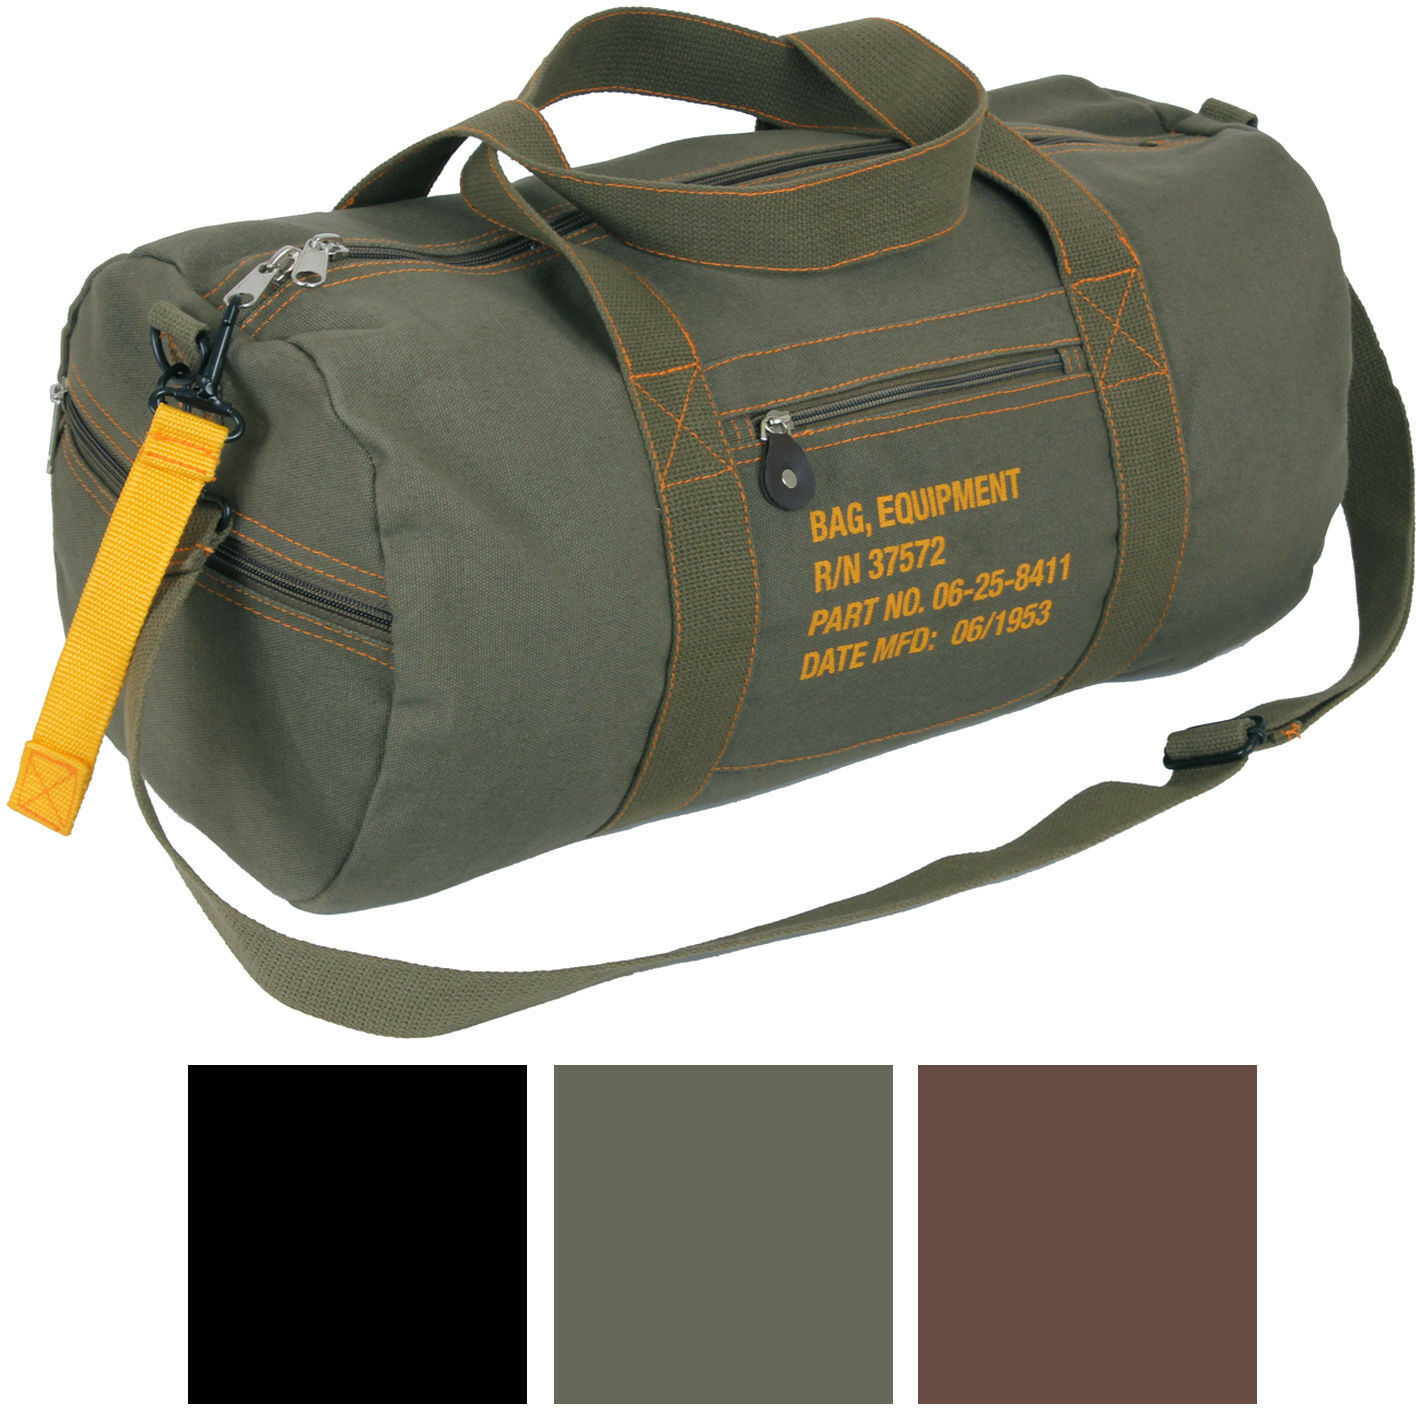 Cotton Canvas Travel Equipment Flight Carry Duffle Shoulder Bag (Small or Large) Bags